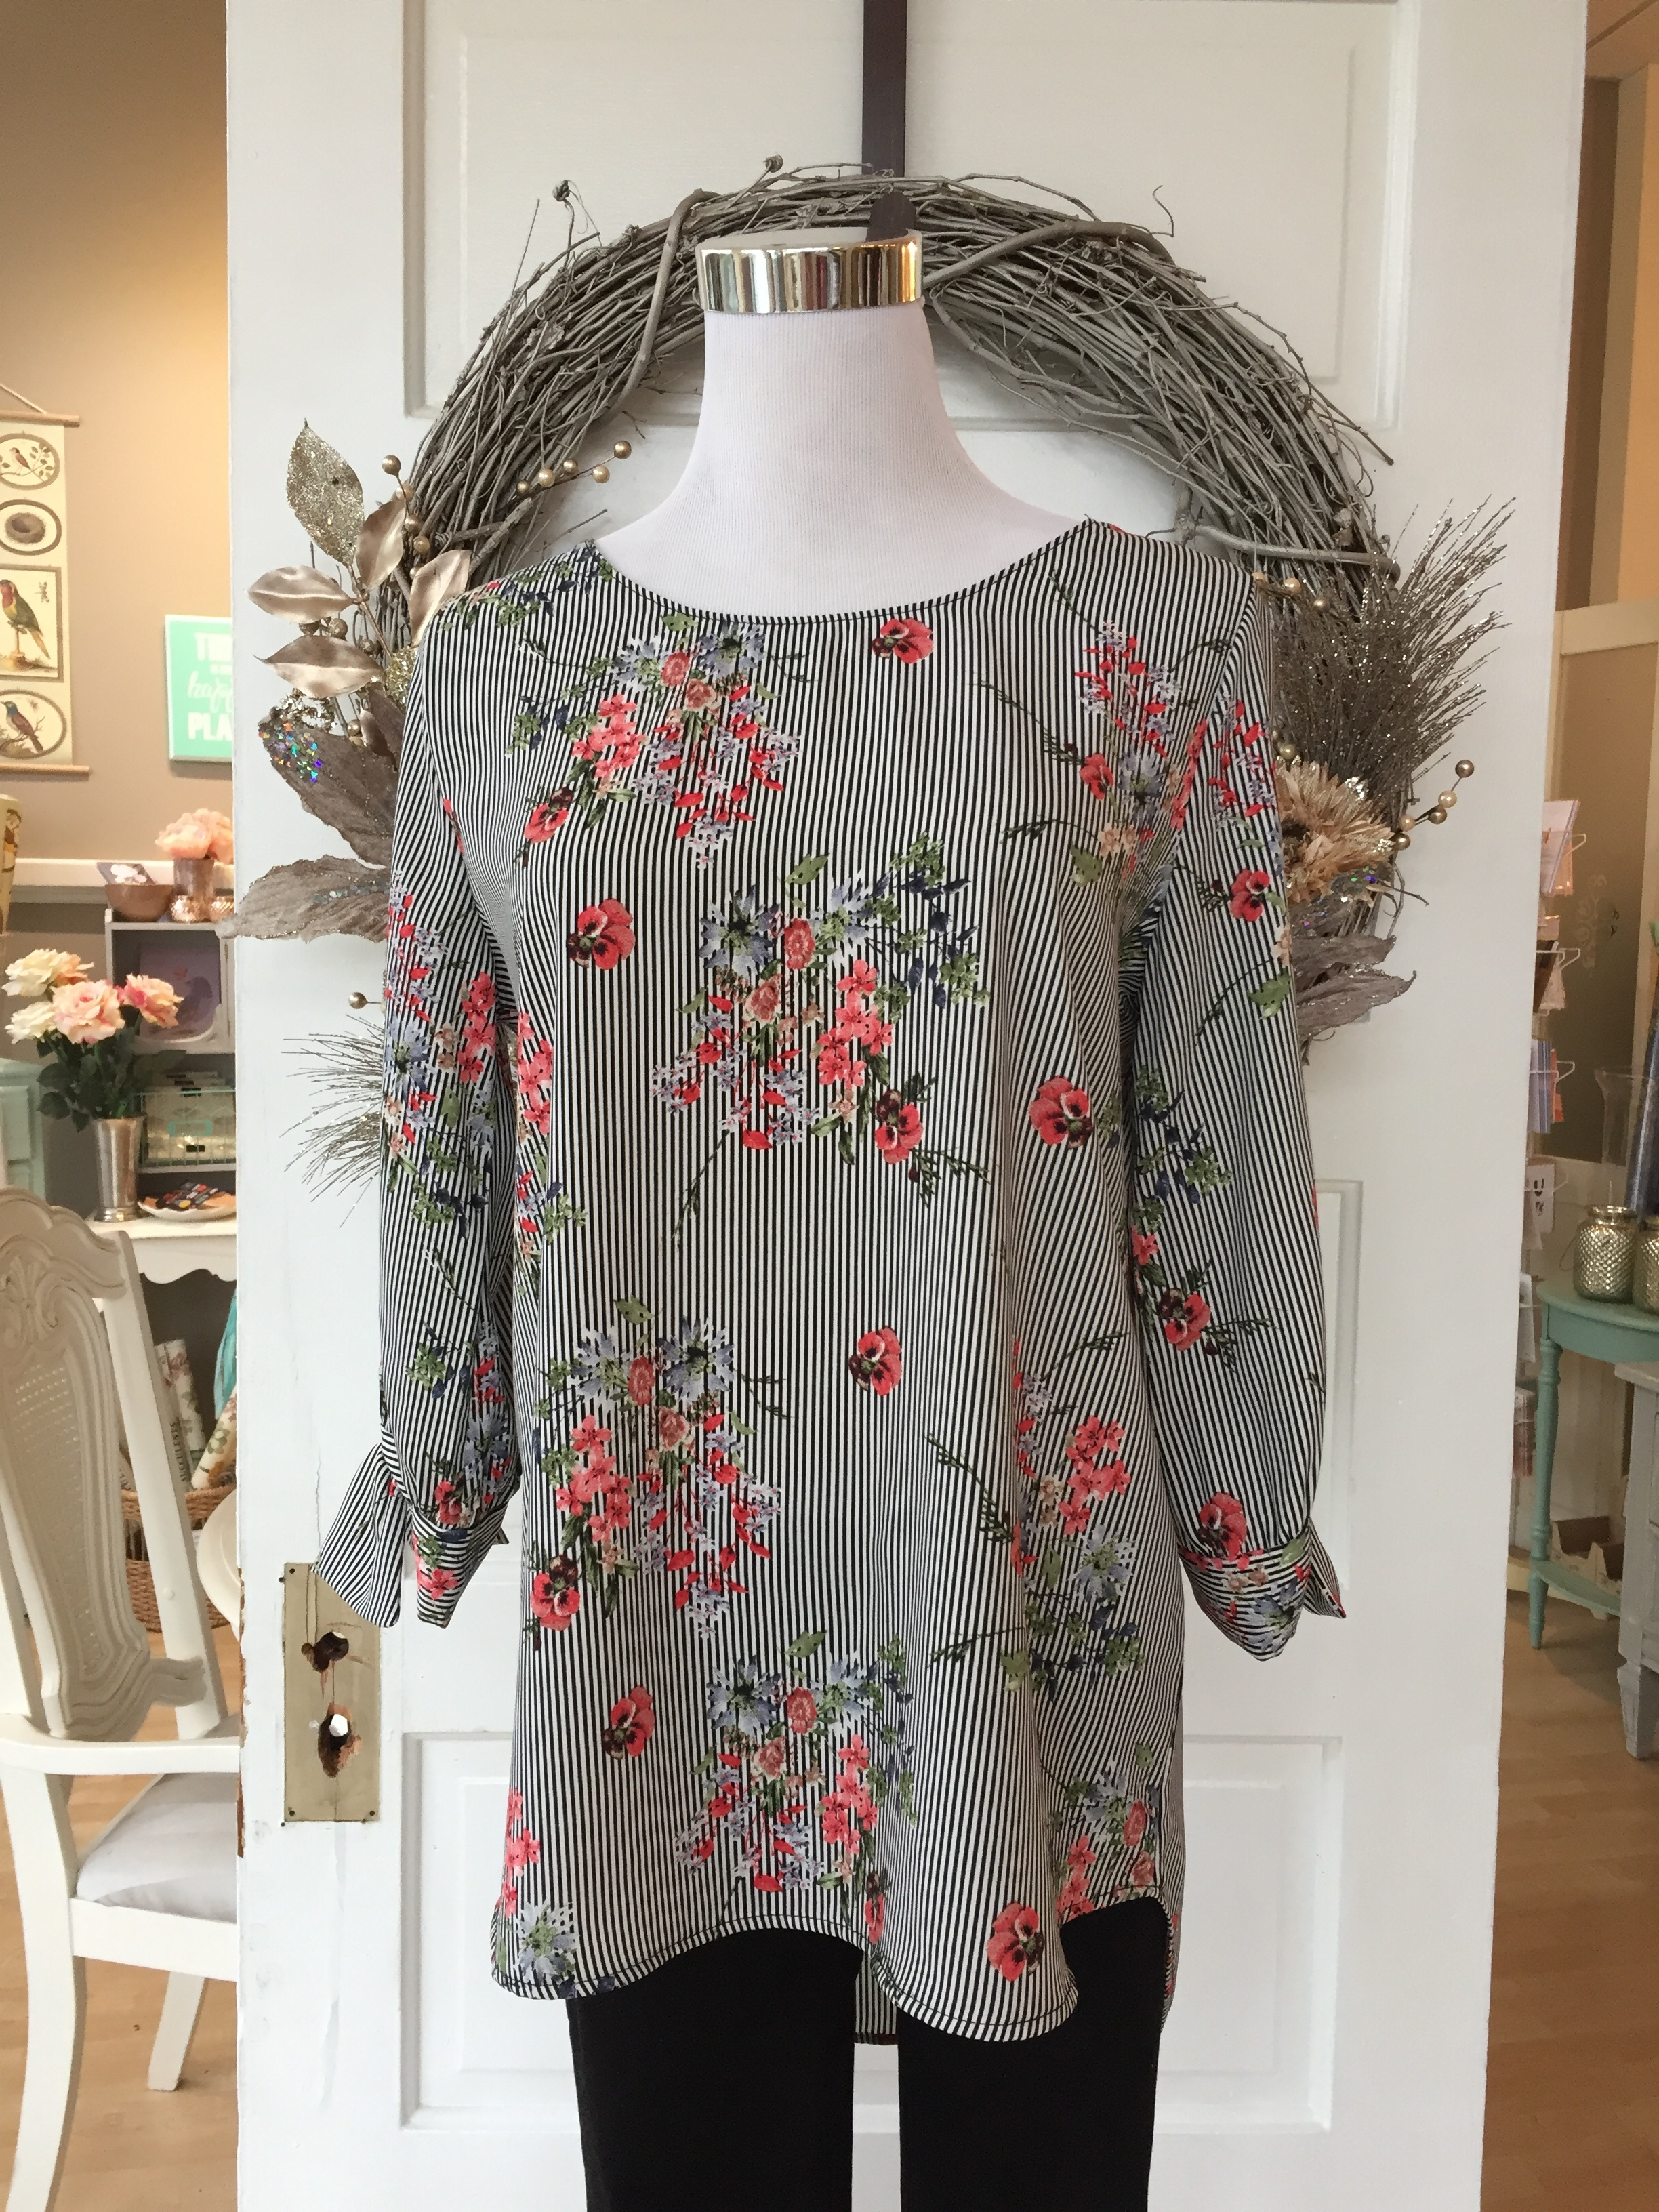 Floral and Stripe Blouse $35